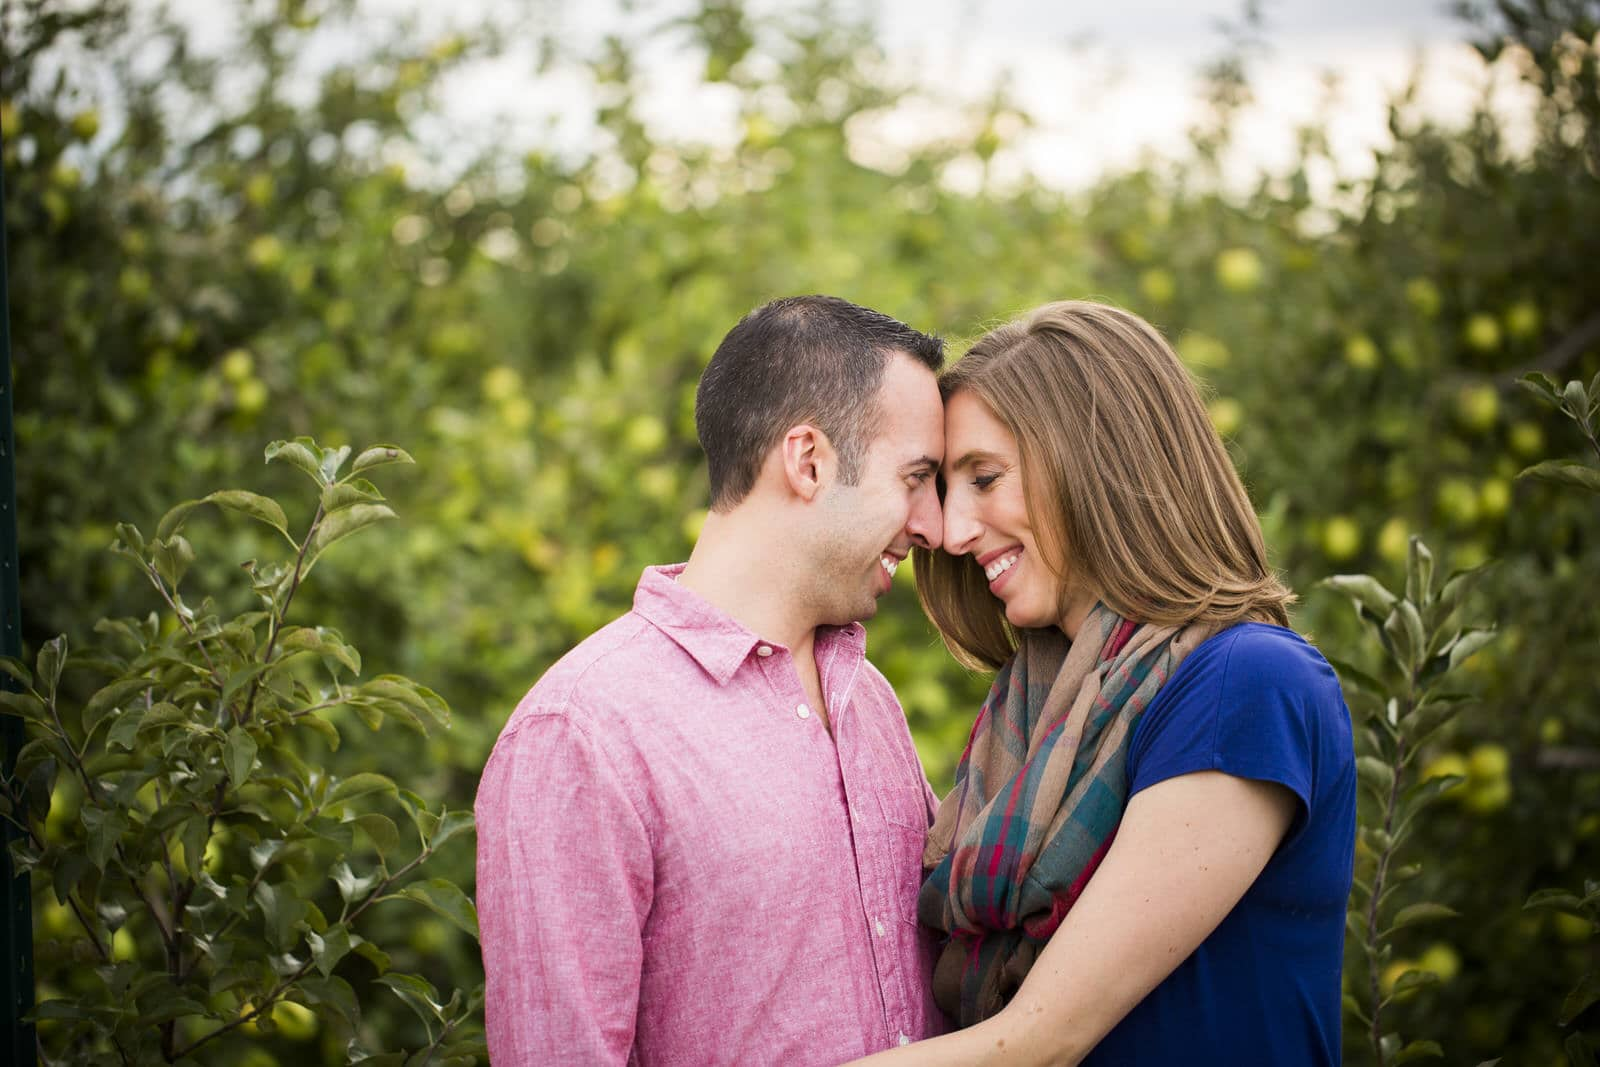 Leslie-Matt-Columbus-Ohio-engagement-photography-by-Amy-Ann-00009